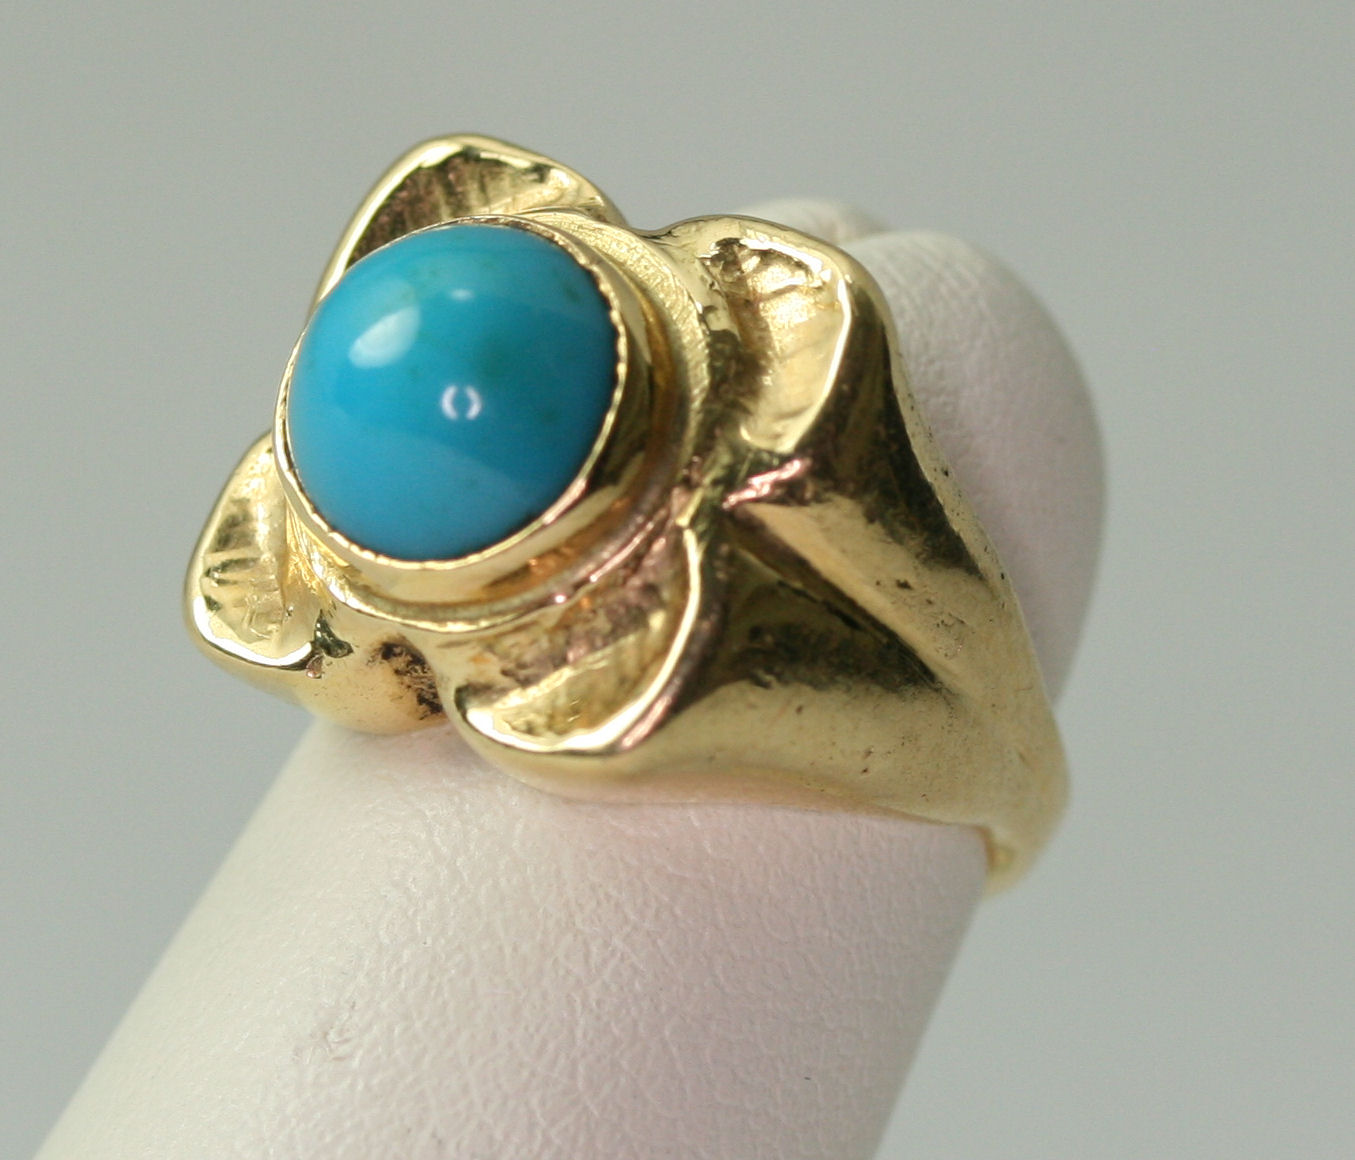 Lot 132 - A contemporary 18ct gold mounted turquoise set ring